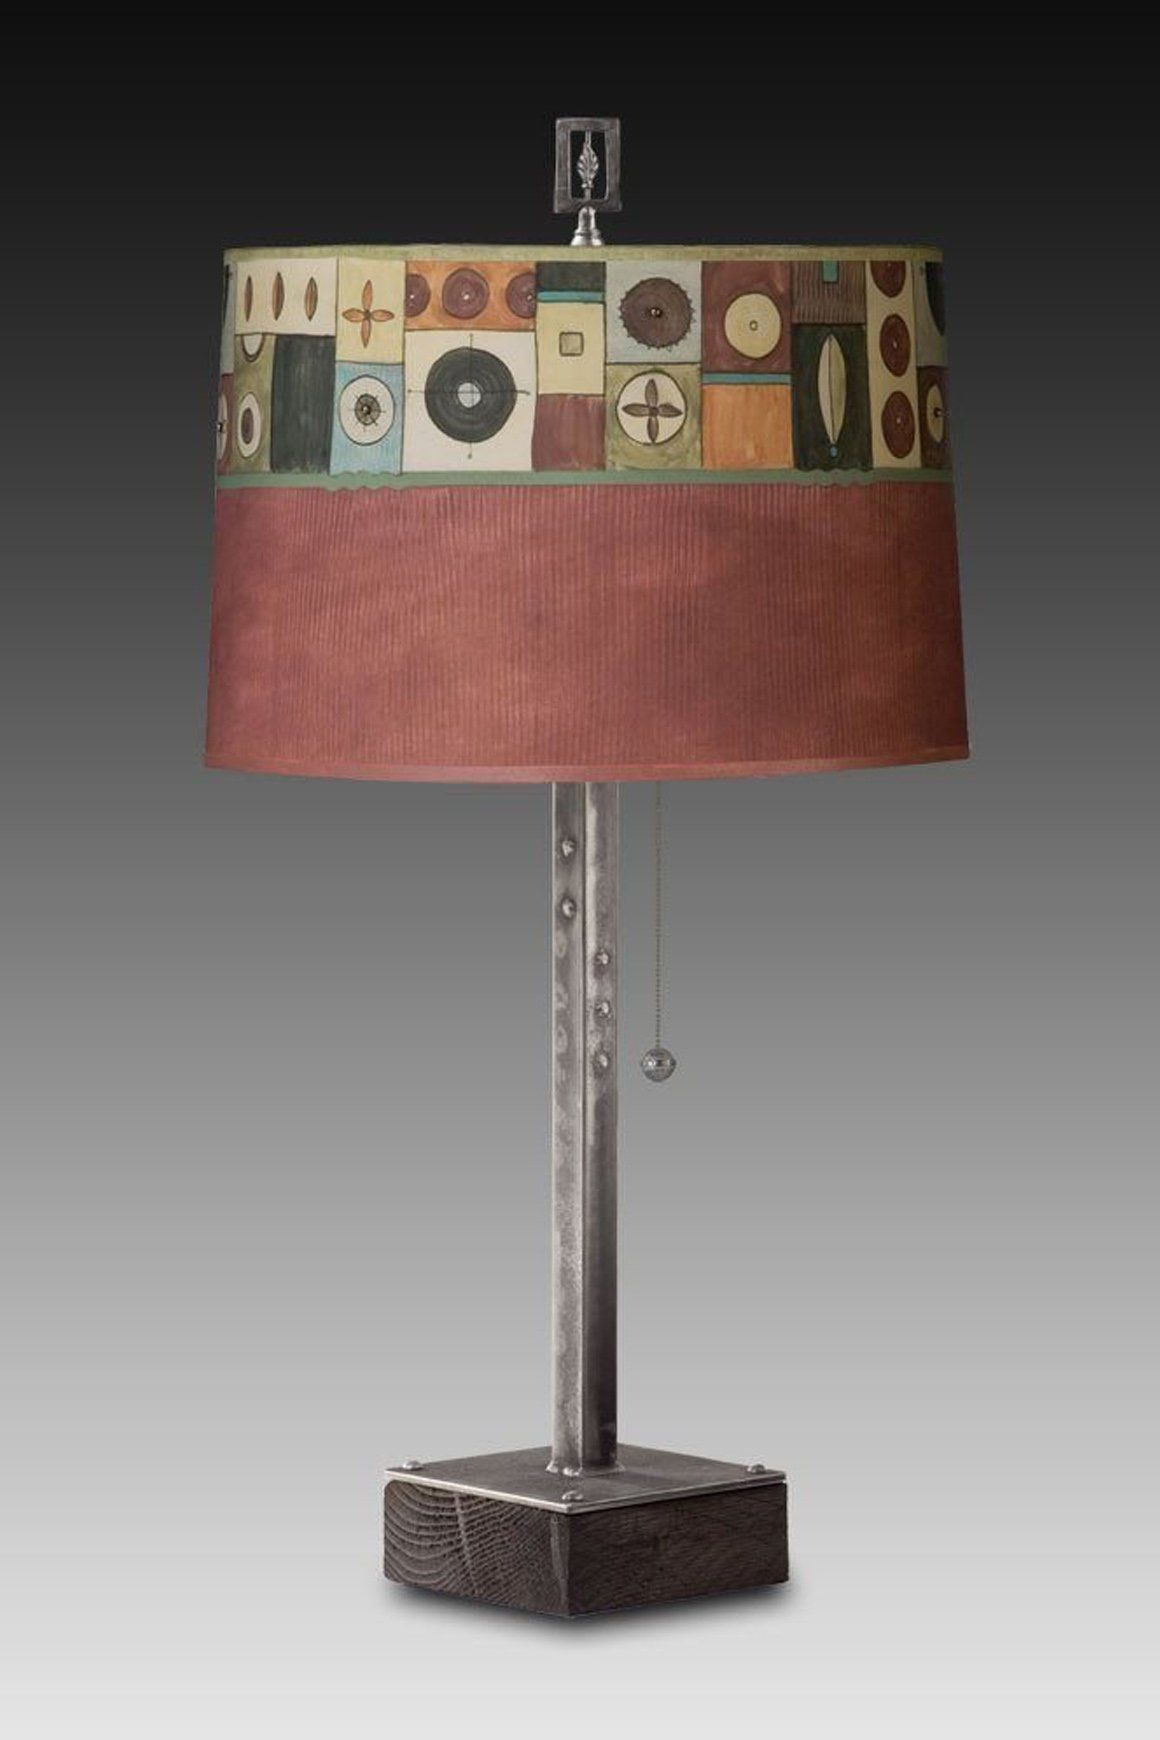 Steel Table Lamp on Wood with Large Drum Shade in Lucky Mosaic Maroon